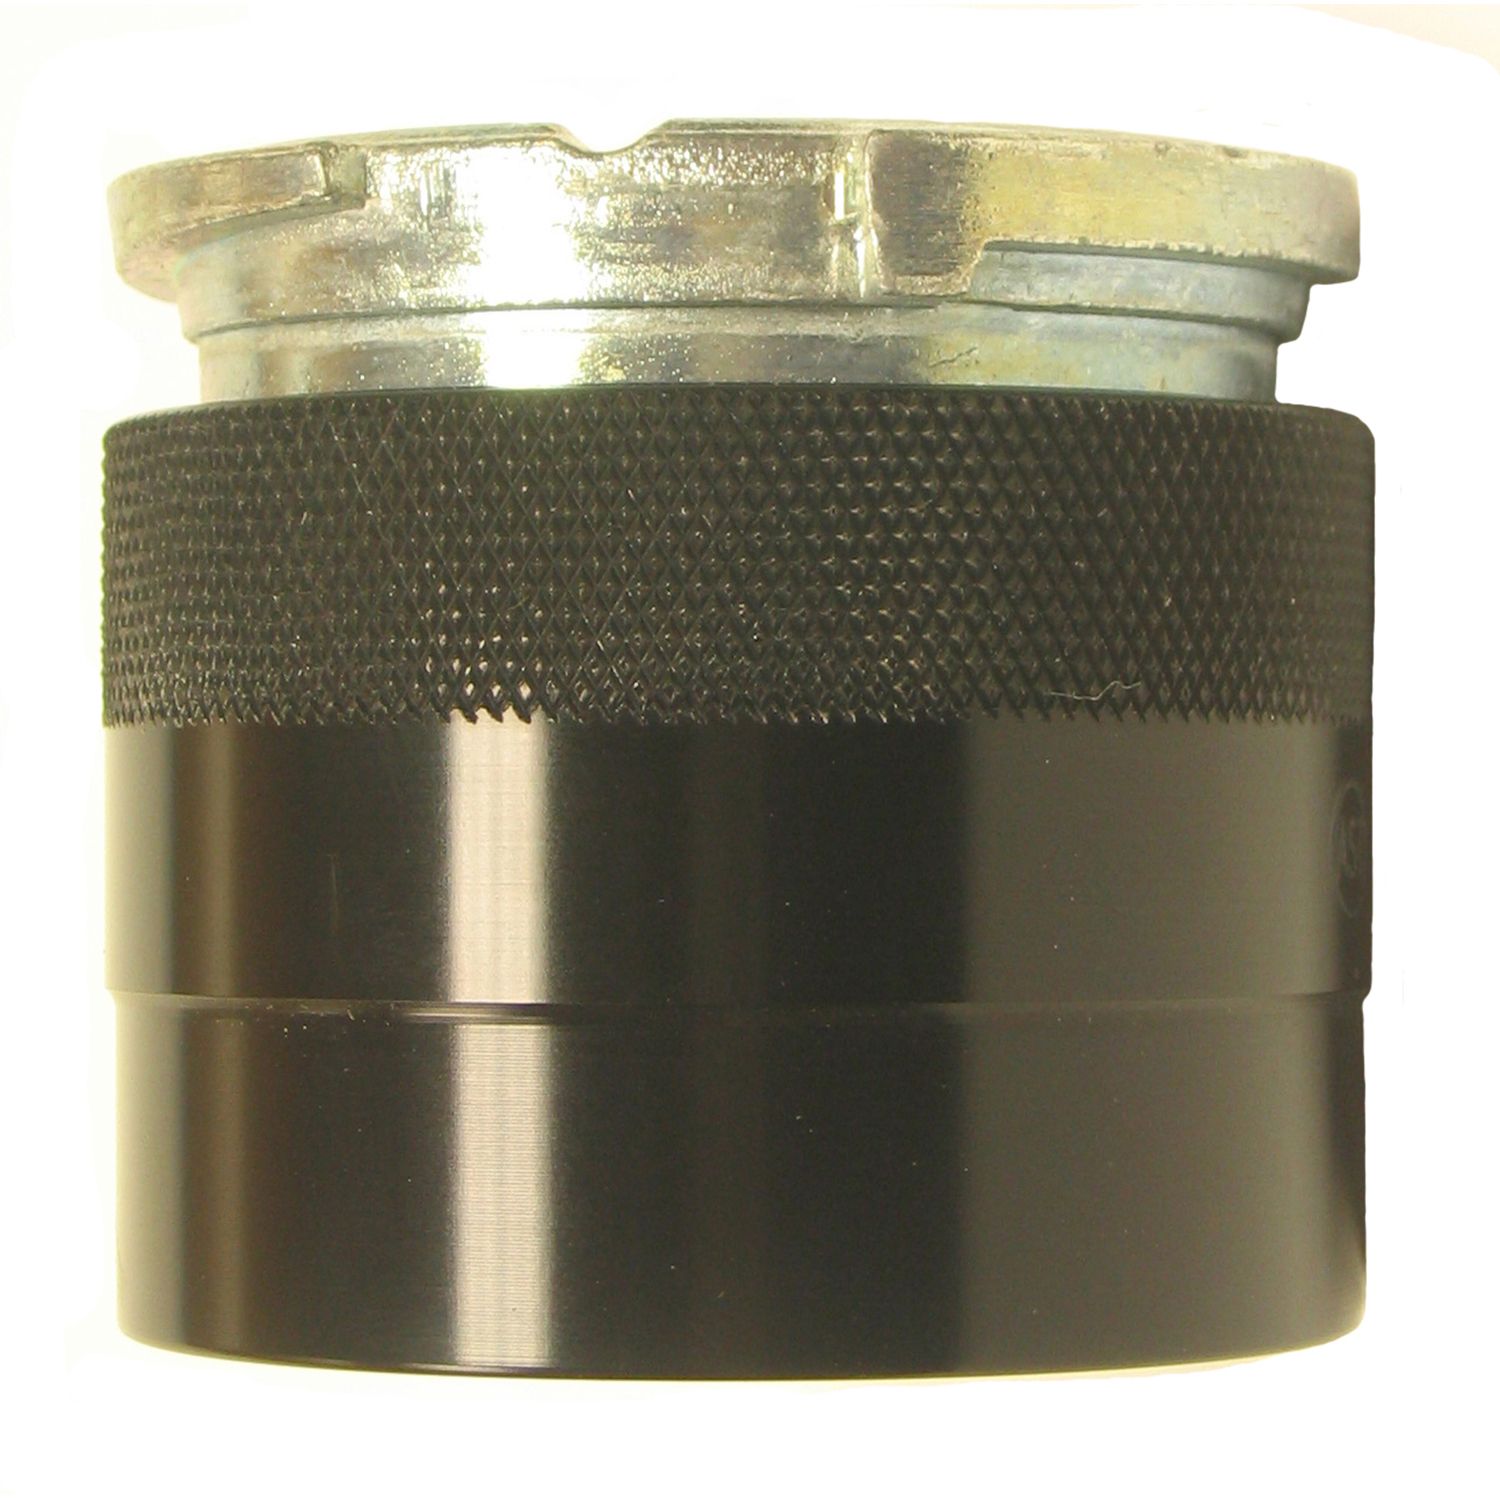 Cooling System Adapter